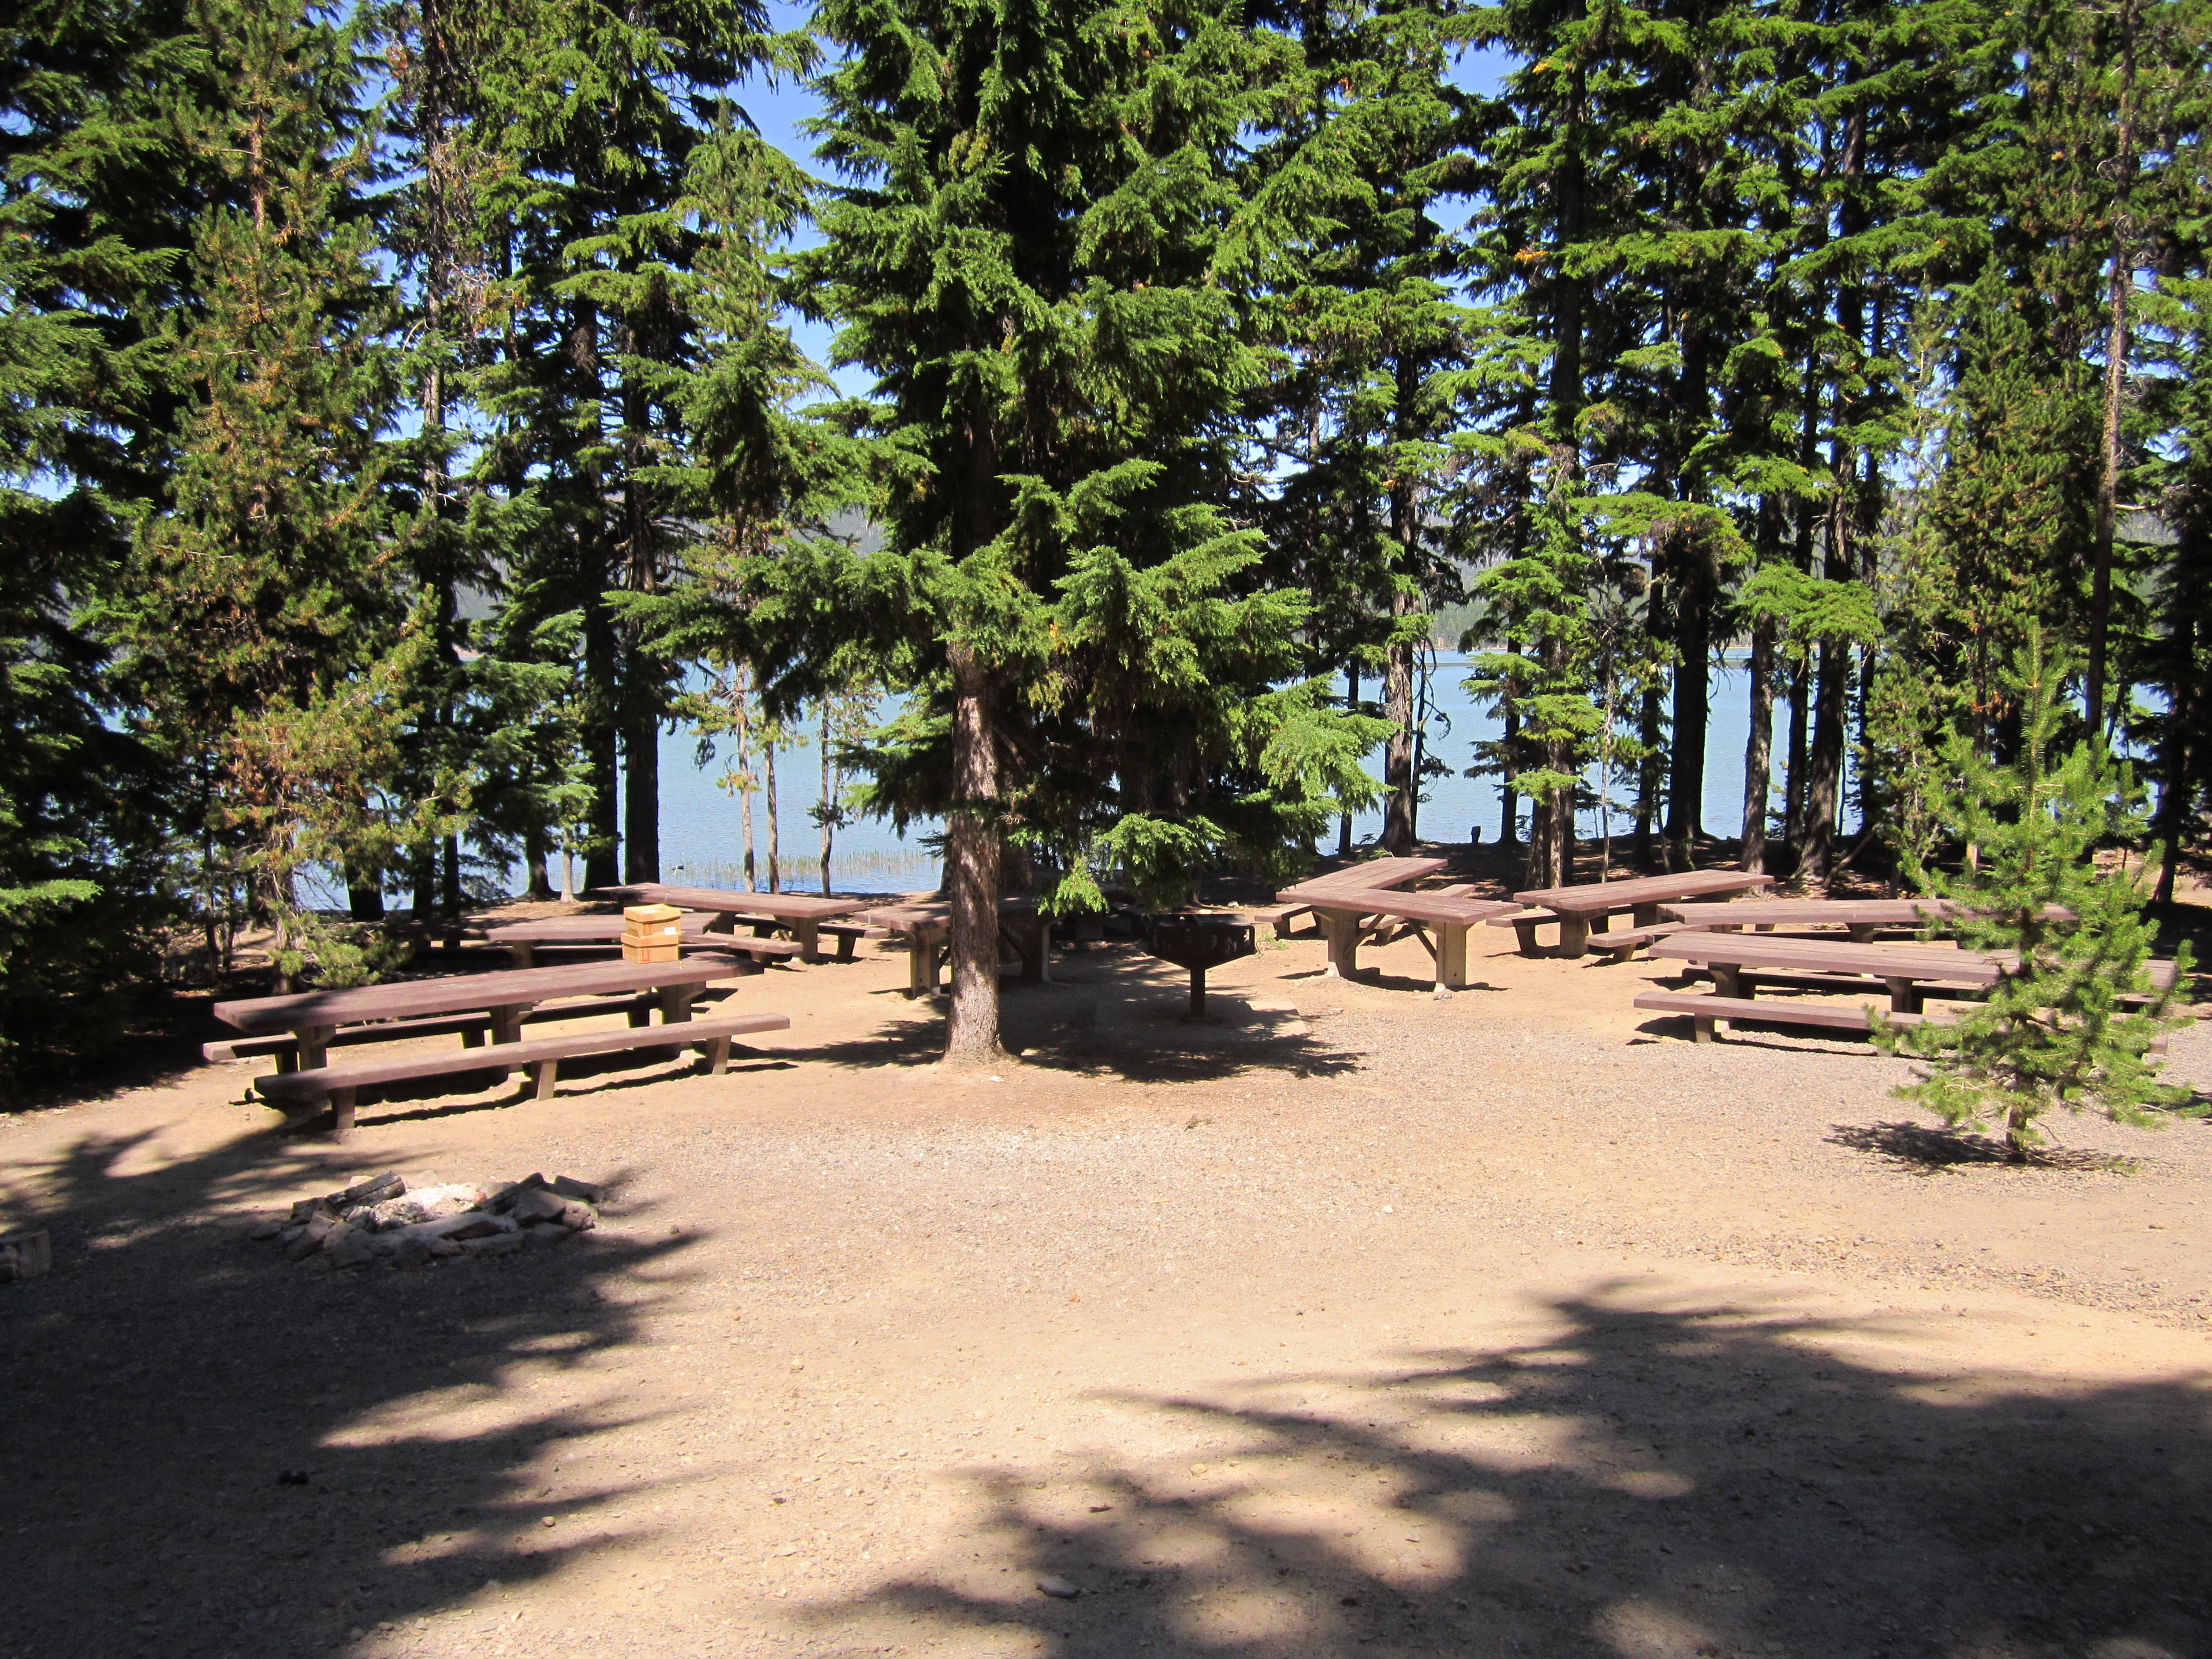 Newberry Group Campsite